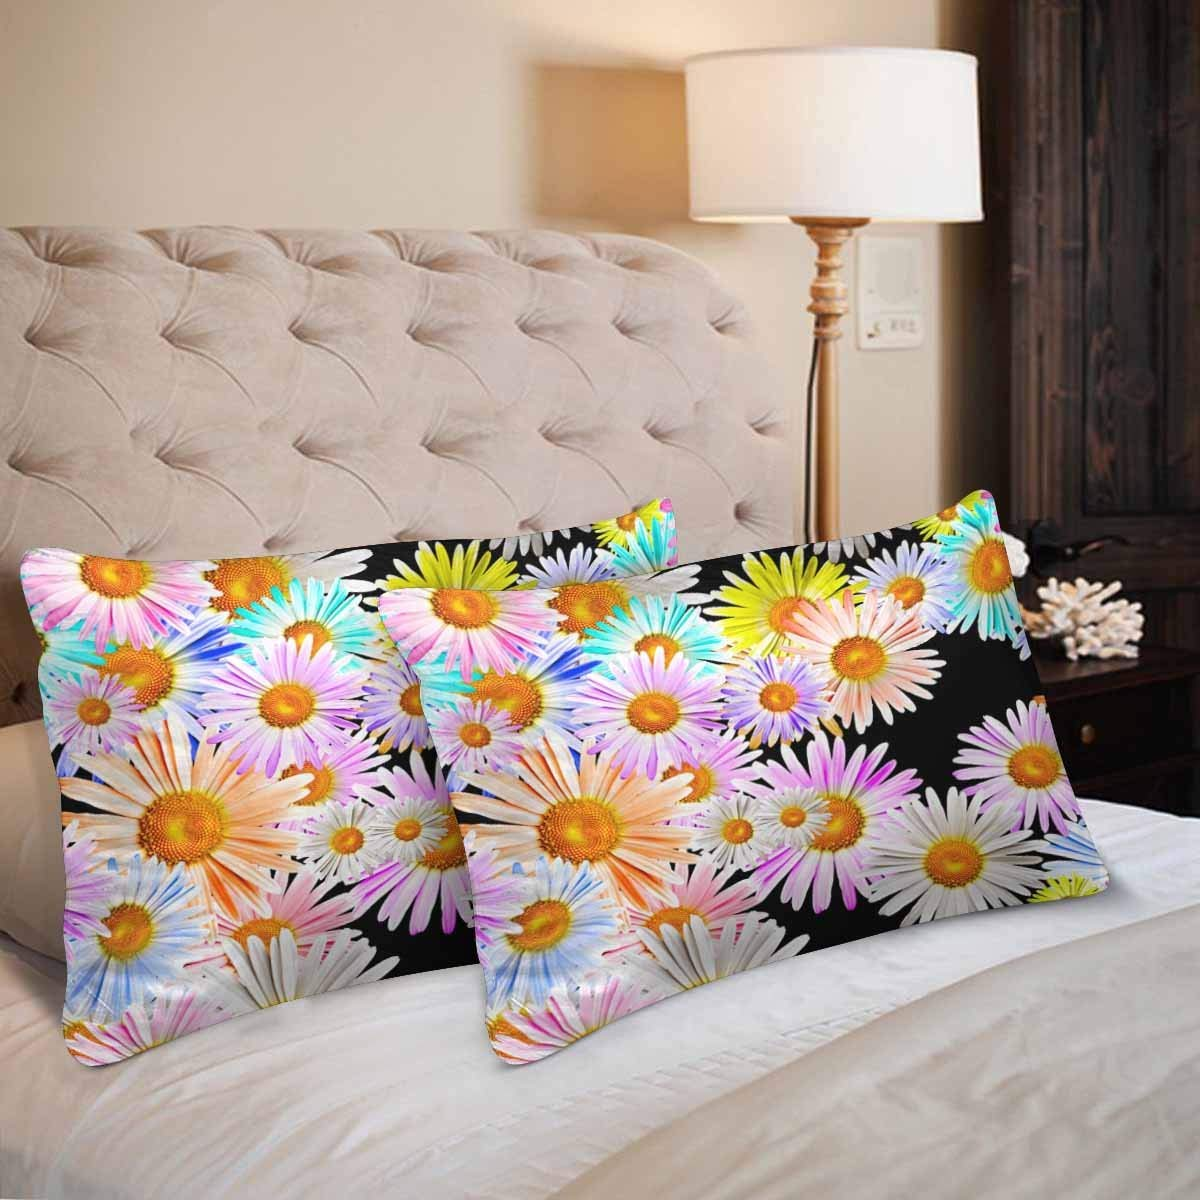 GCKG Lovely Colorful Camomiles Seamless Pattern Pillow Cases Pillowcase 20x30 inches Set of 2 - image 1 de 4